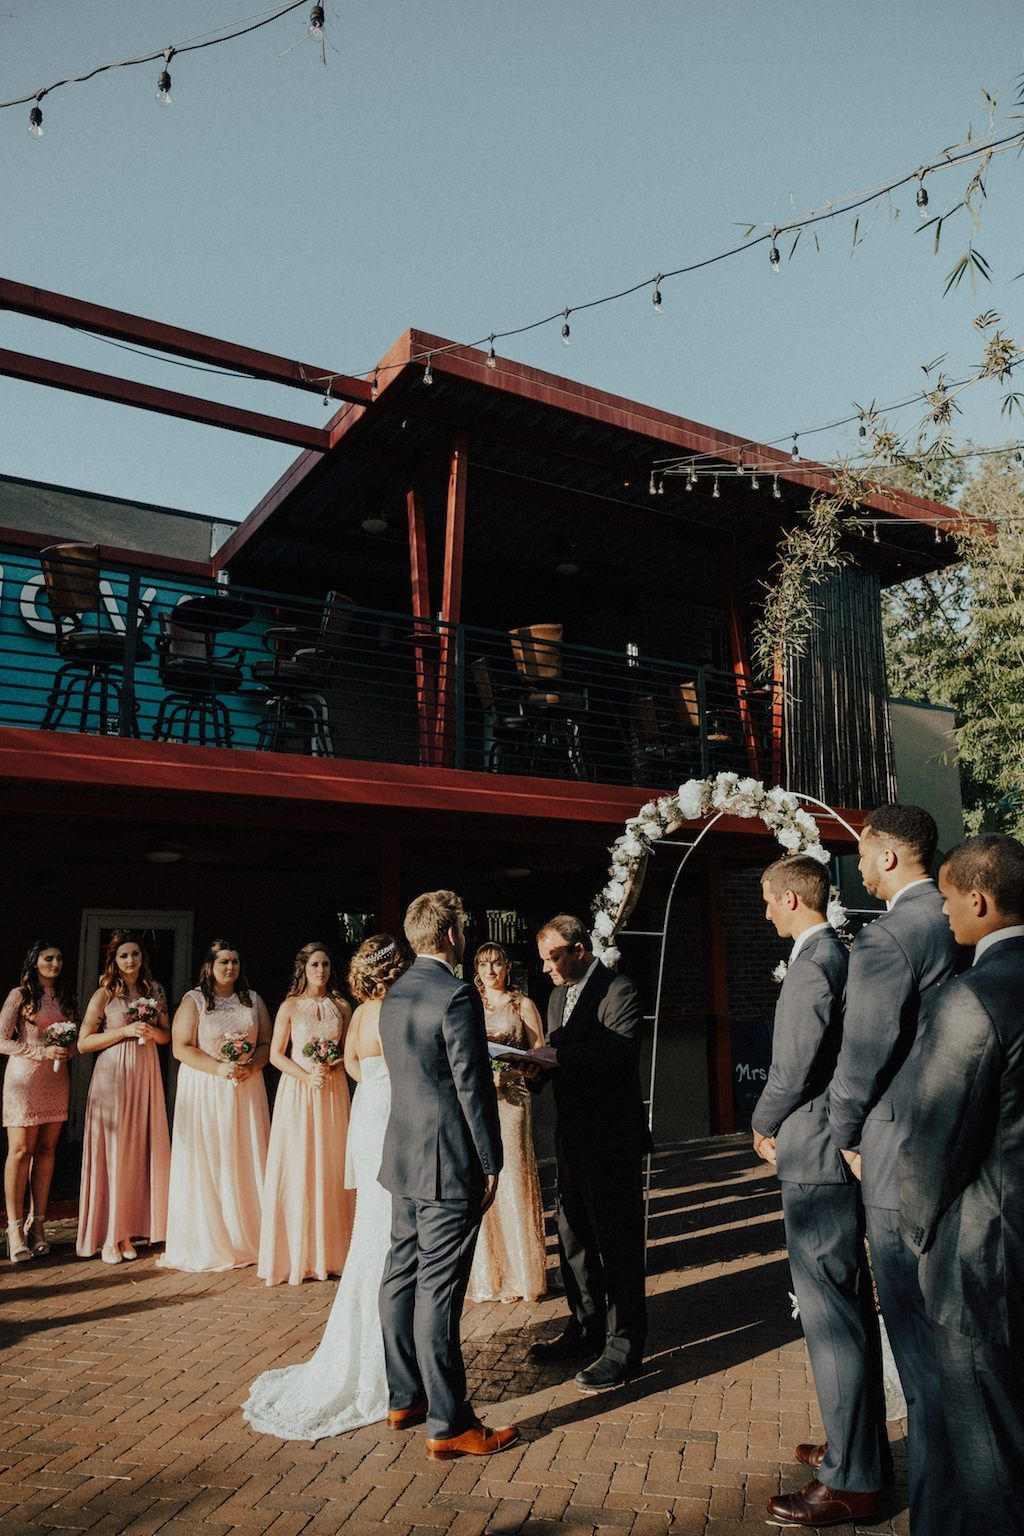 Bamboo Outdoor Courtyard Garden Wedding Ceremony Portrait, Groomsmen in Gray Suits, Bridesmaids in Mismatched Blush and Cream Dresses, with White Floral and Greenery Arch | Downtown St Pete Wedding Venue NOVA 535